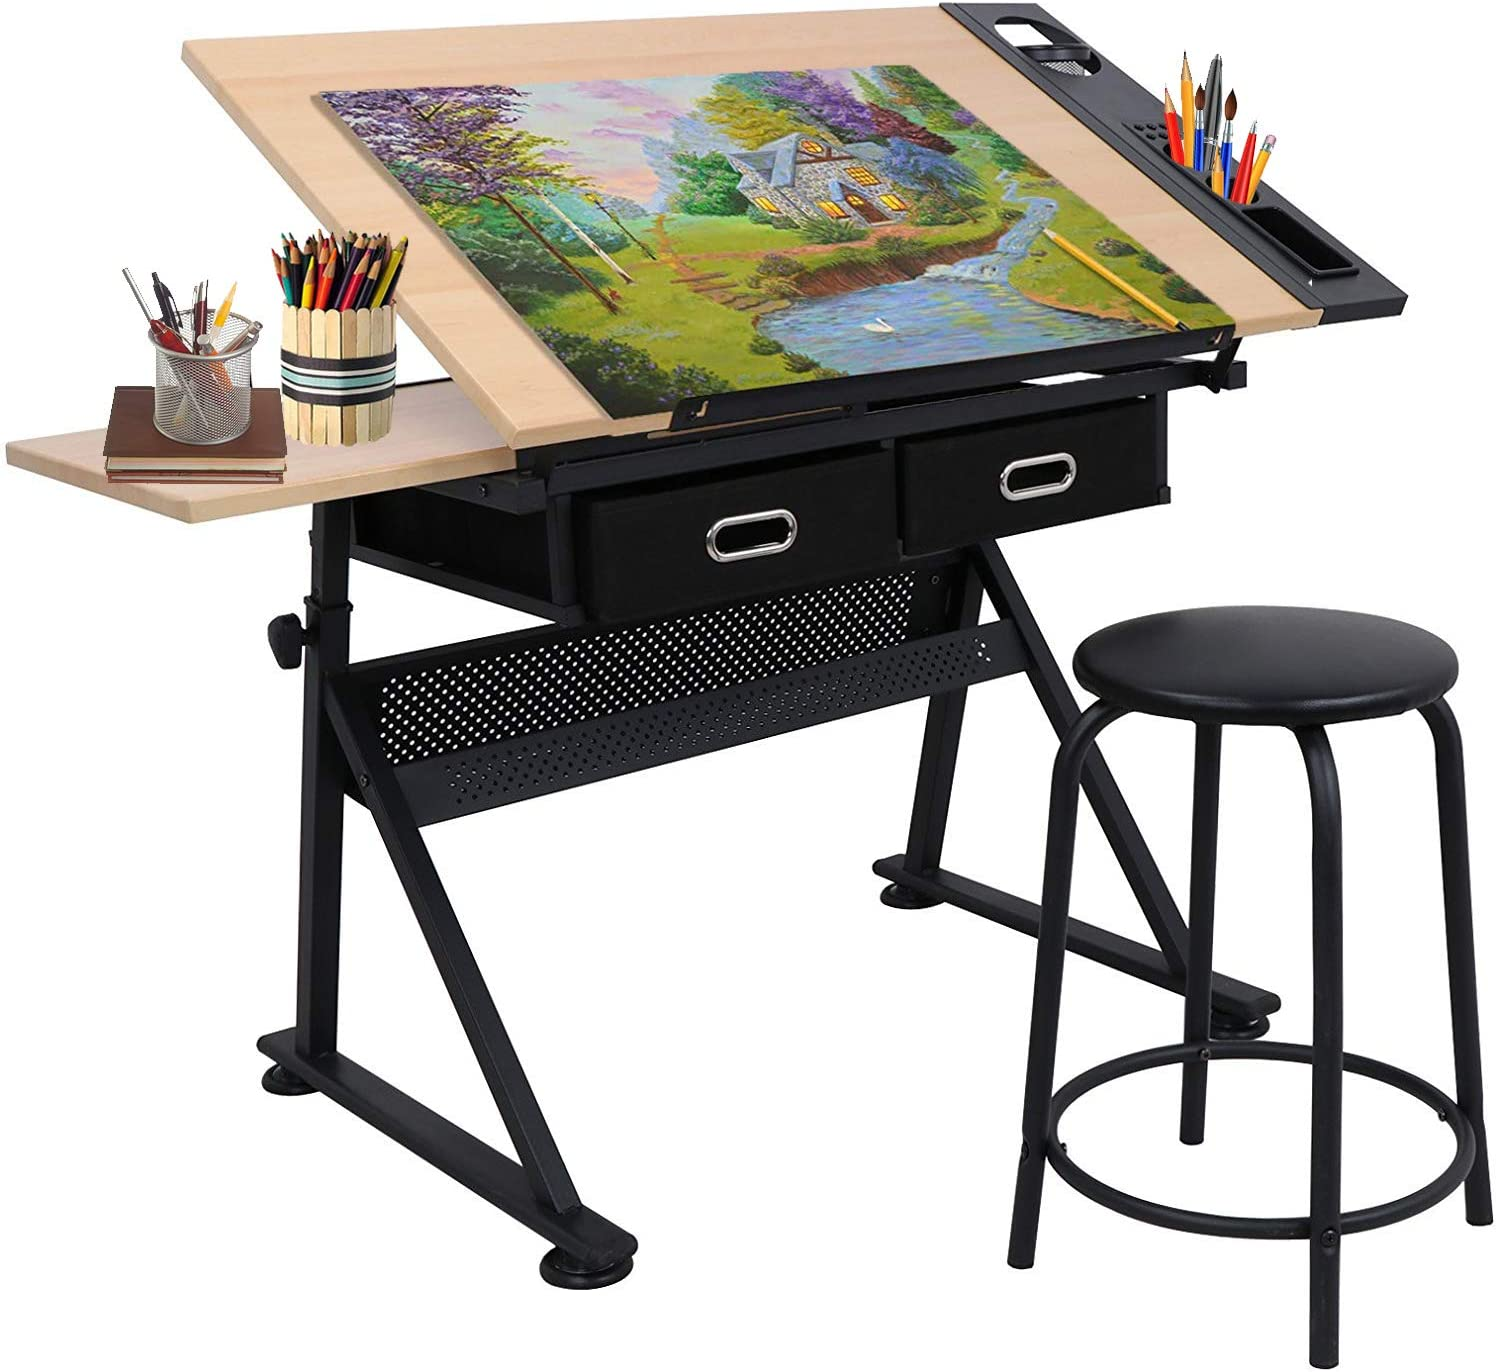 overseas Smartxchoices Branded goods Drafting Table Drawing Tiltable Reclining Tab Desk